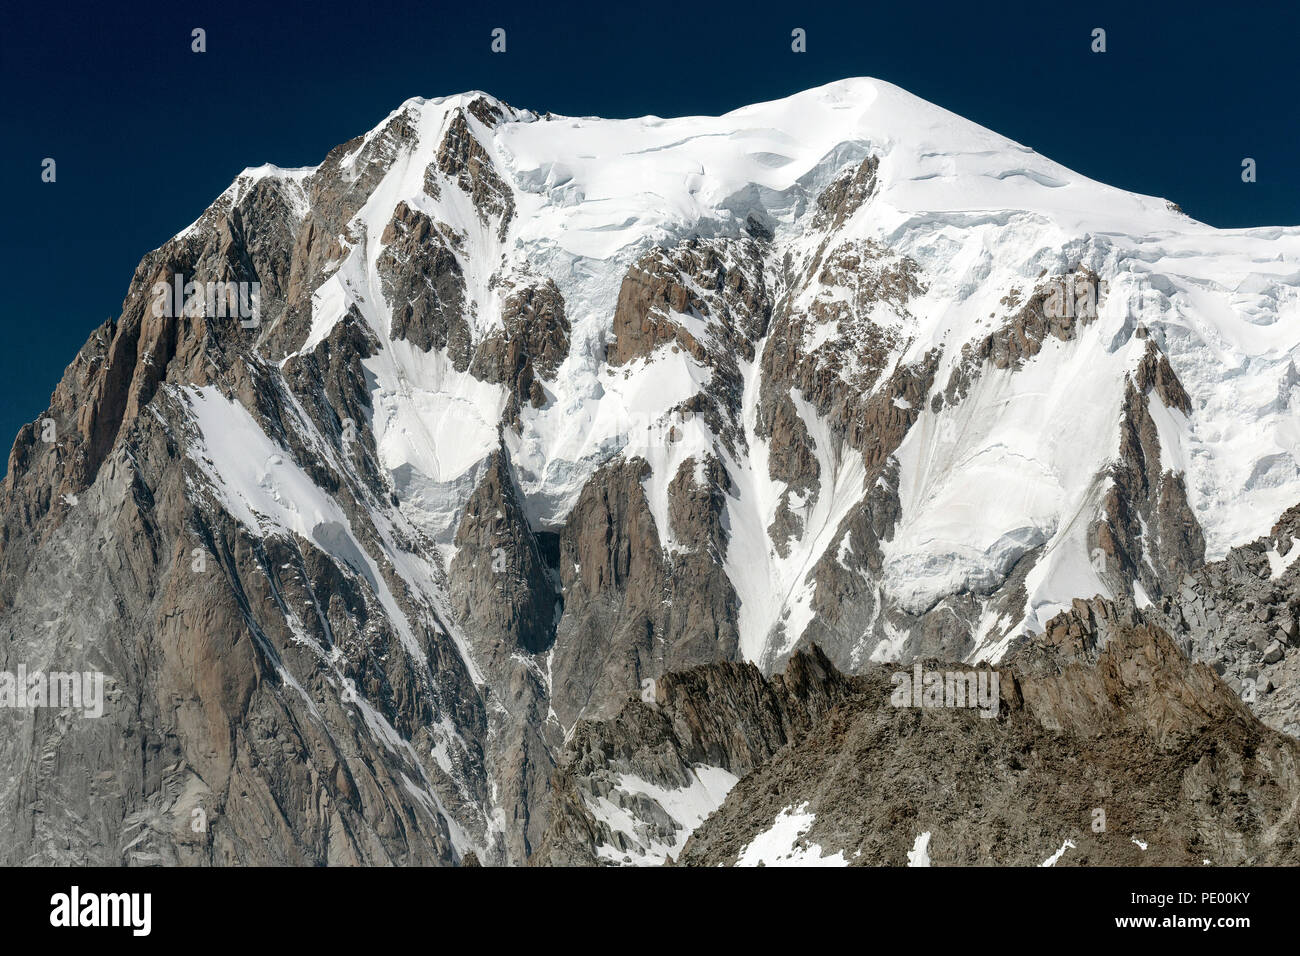 The Mont Blanc (Monte Bianco) massif in Aosta Valley, Alpes of Italy, in a summer morning. - Stock Image